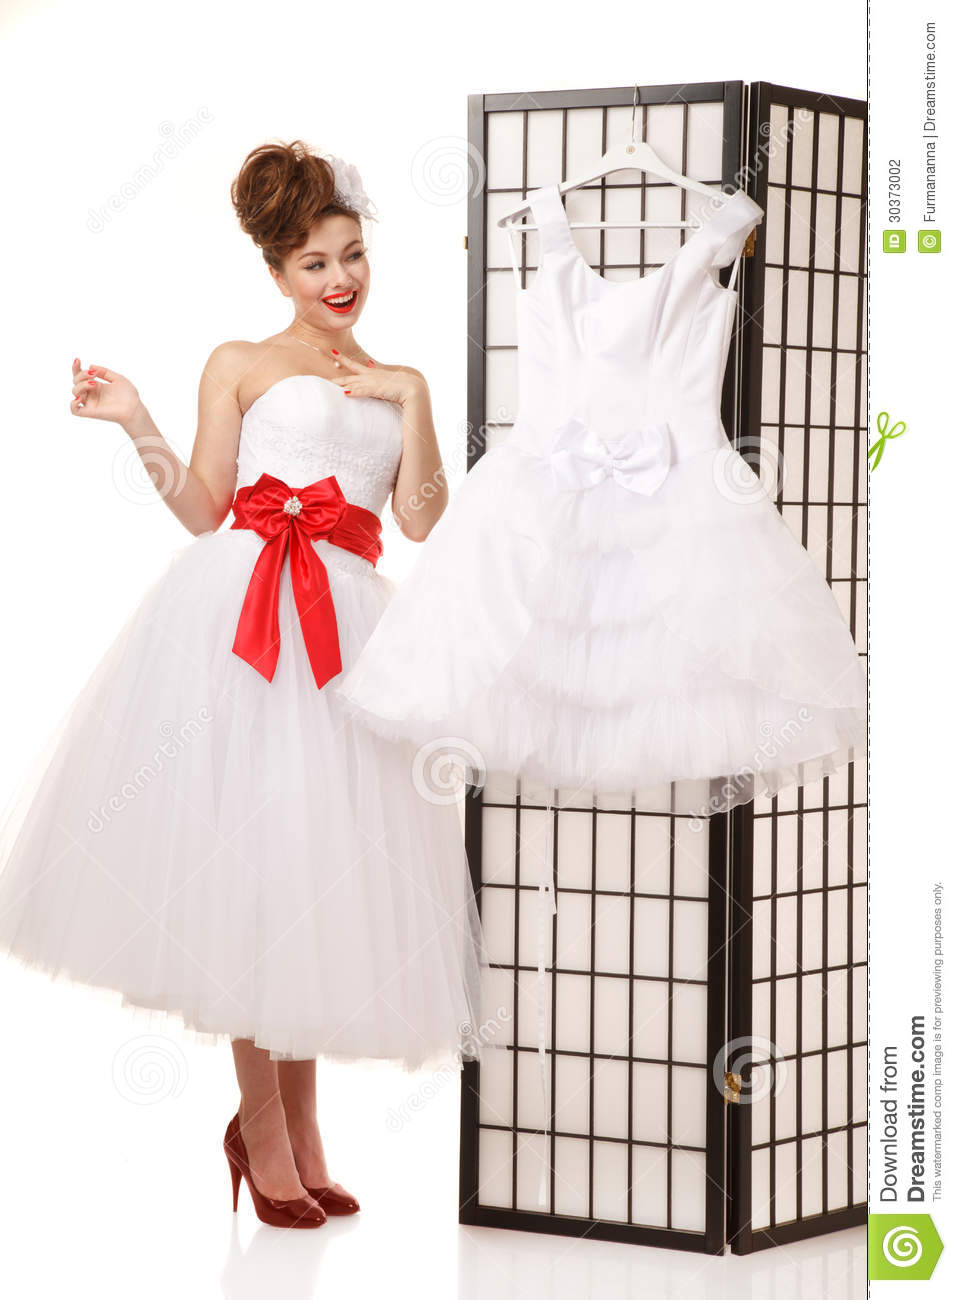 Pin Up Bride Stock Photo Image Of Girl Cheerful Dress 30373002